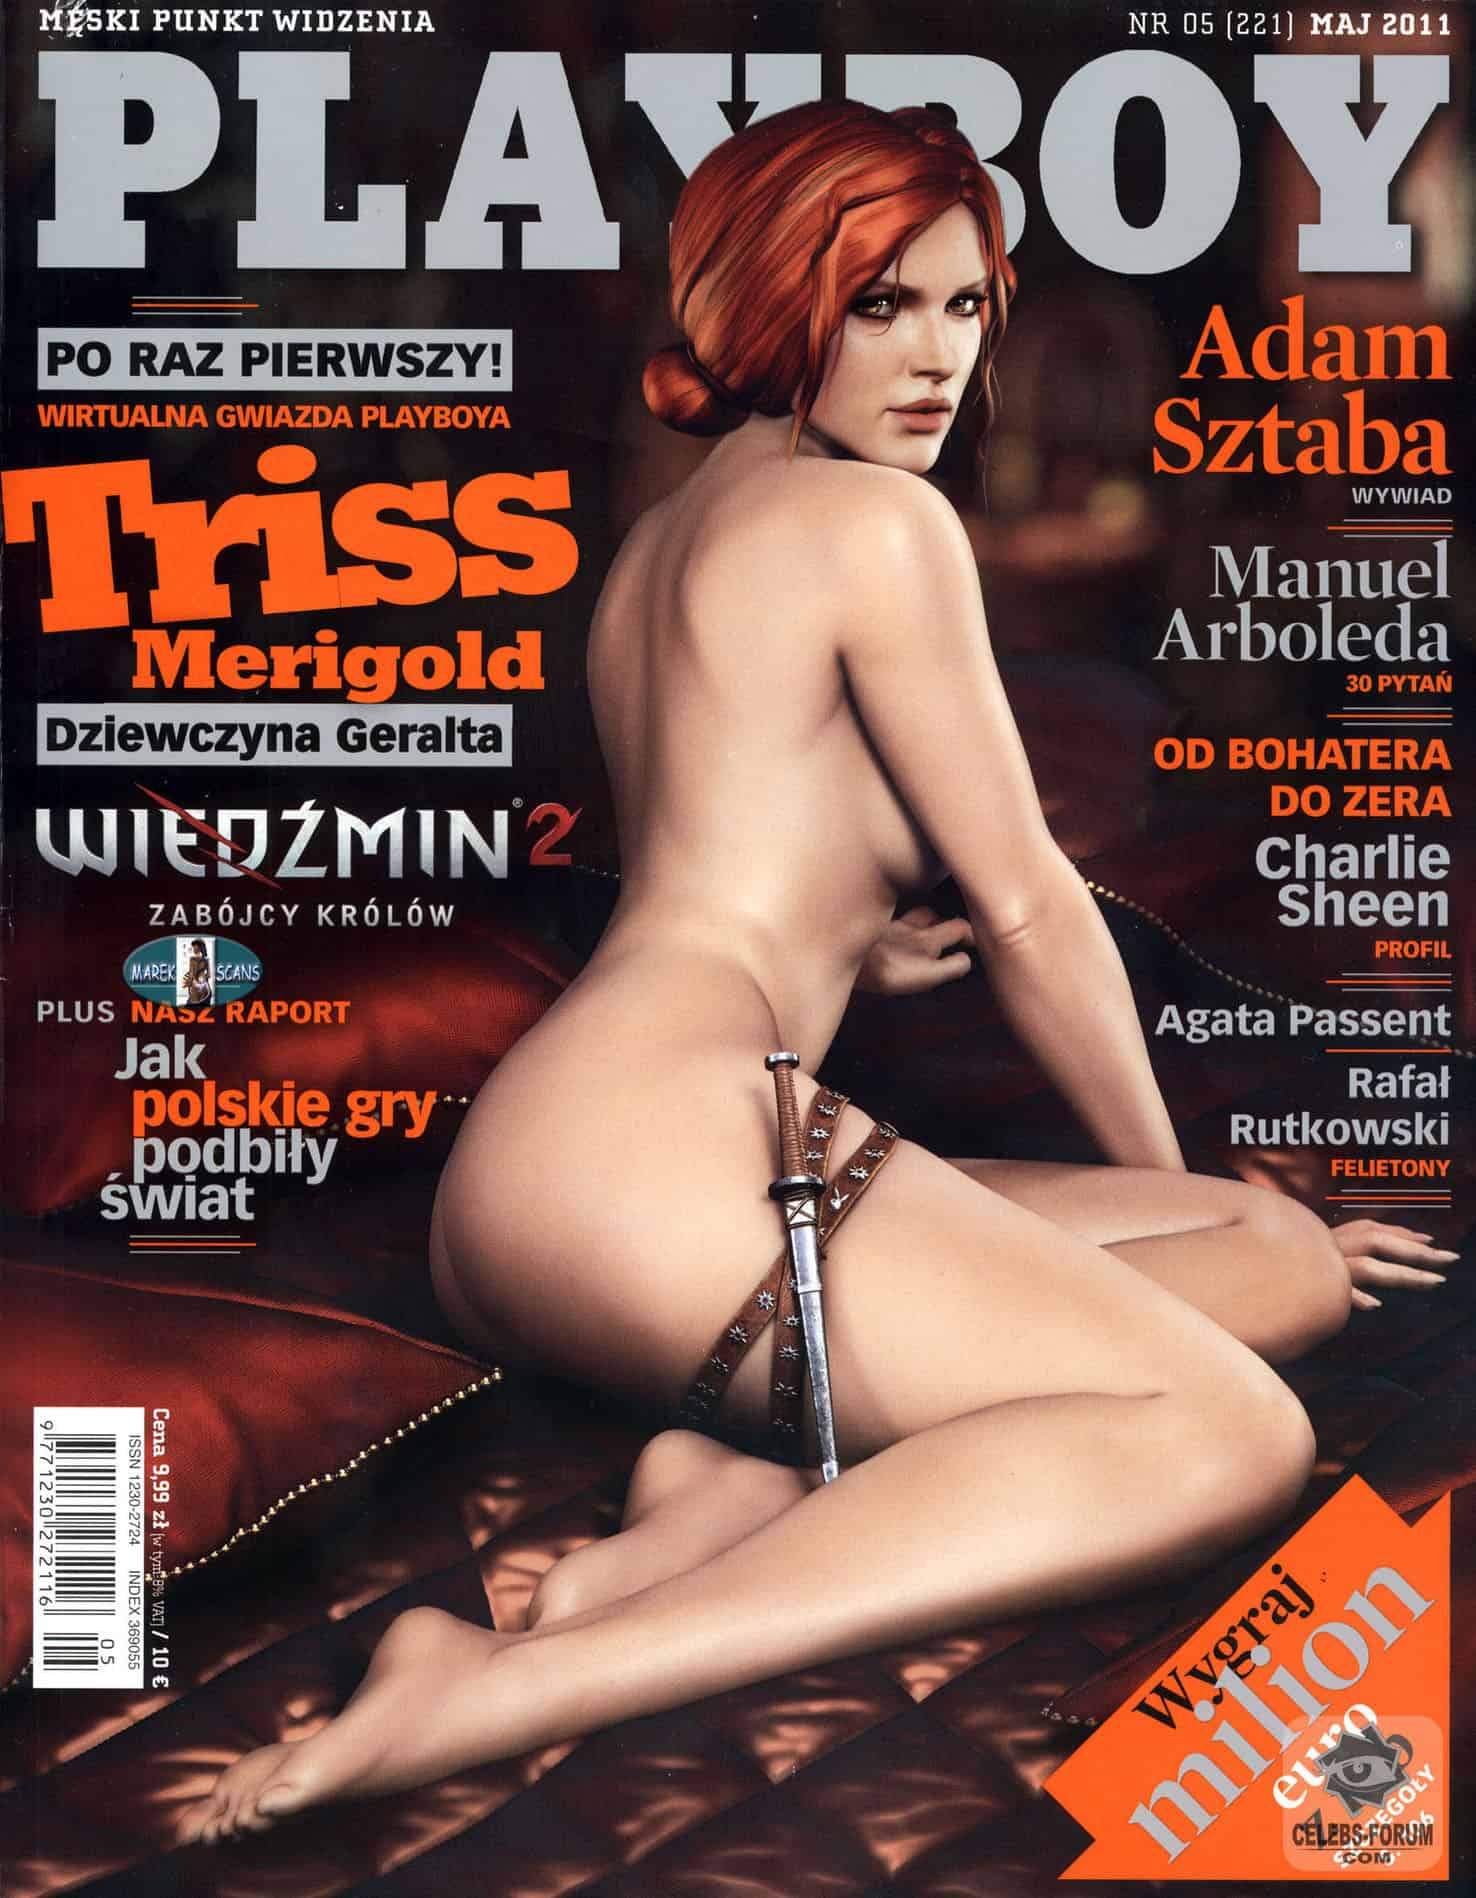 Triss Merigold Nude Cover From Polish Playboy